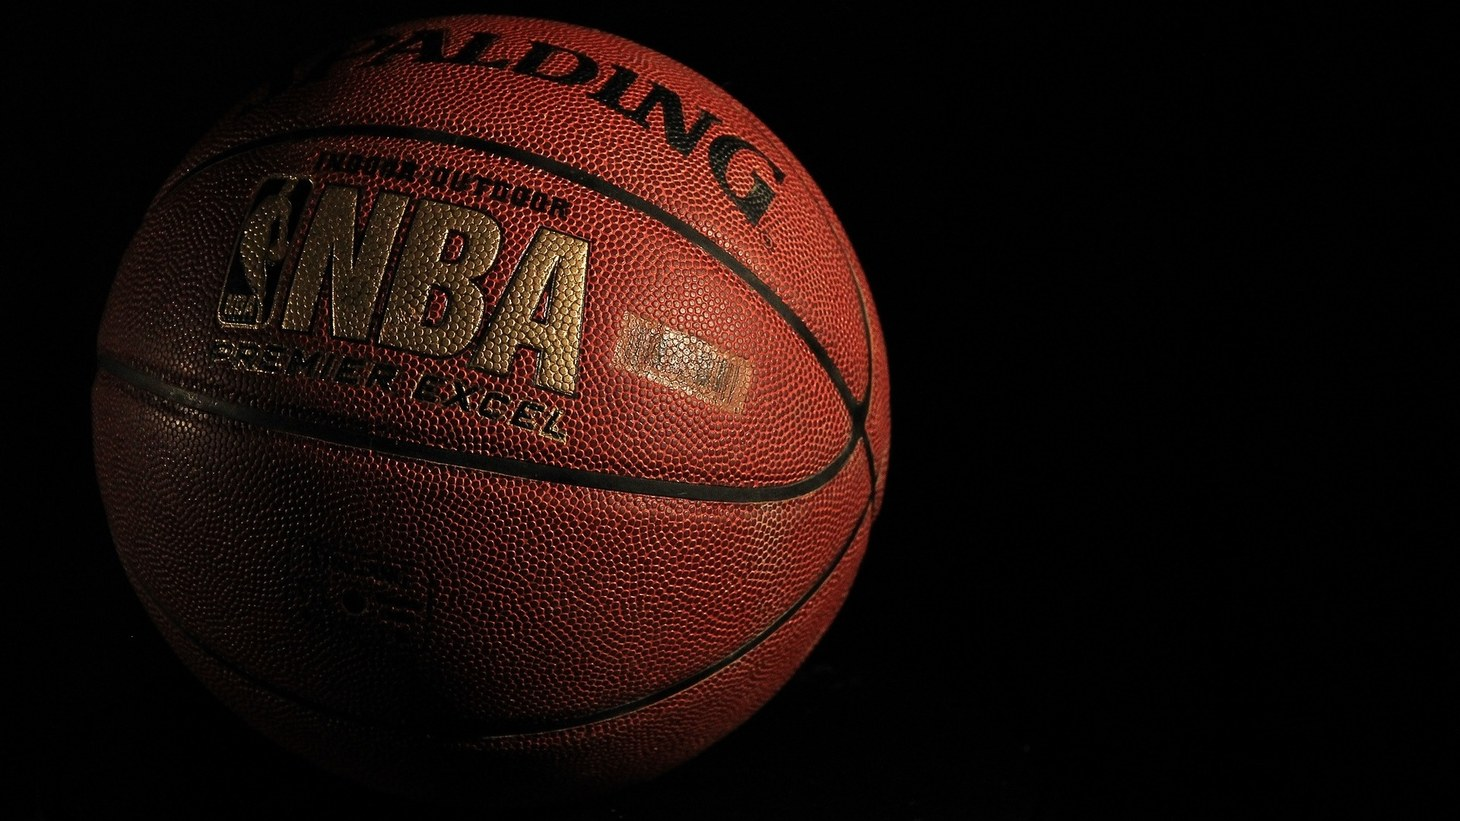 Opening day for the NBA is currently set for July 30.